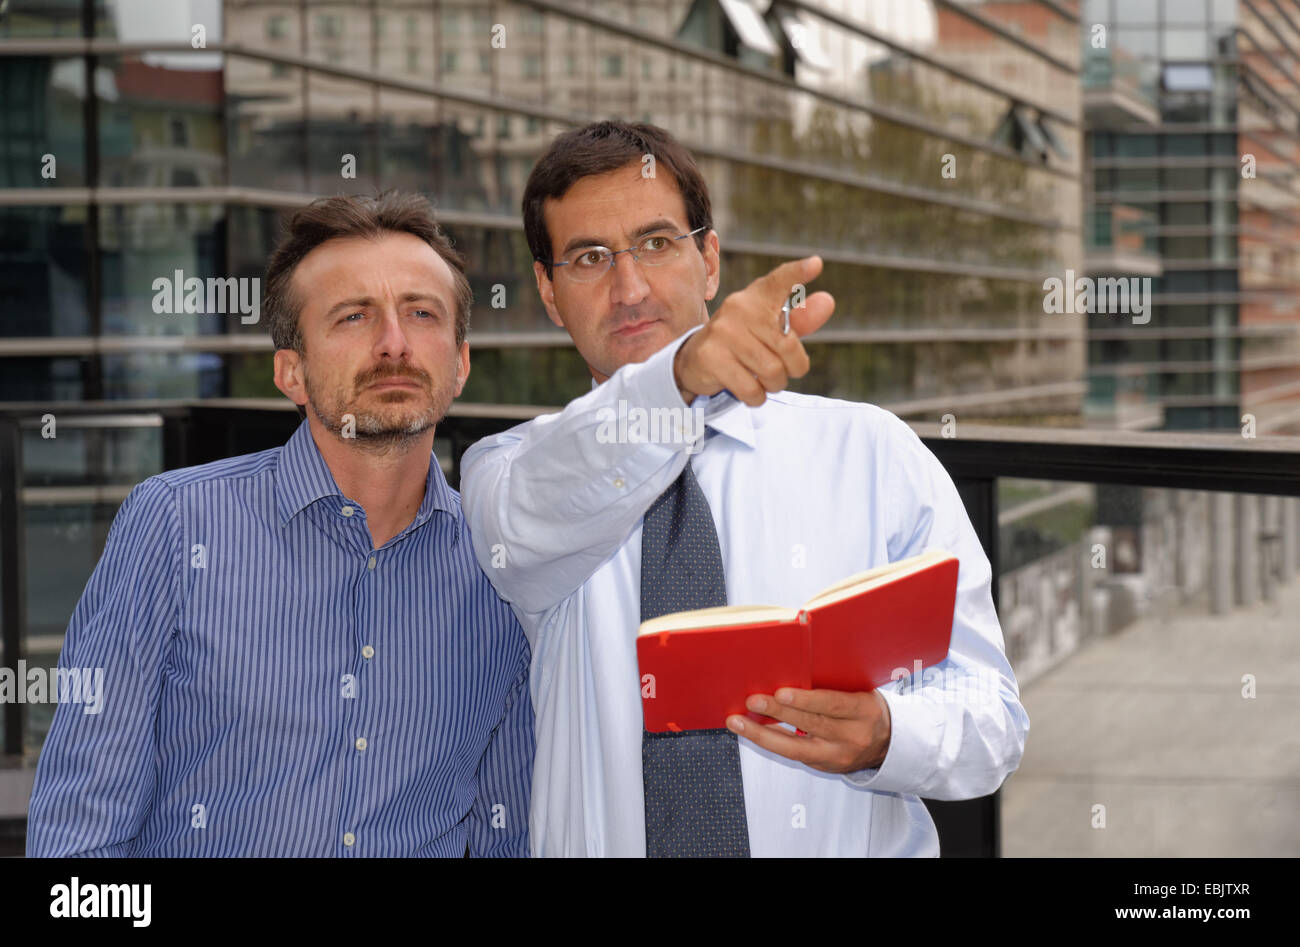 Two men having discussion, pointing and looking ahead - Stock Image